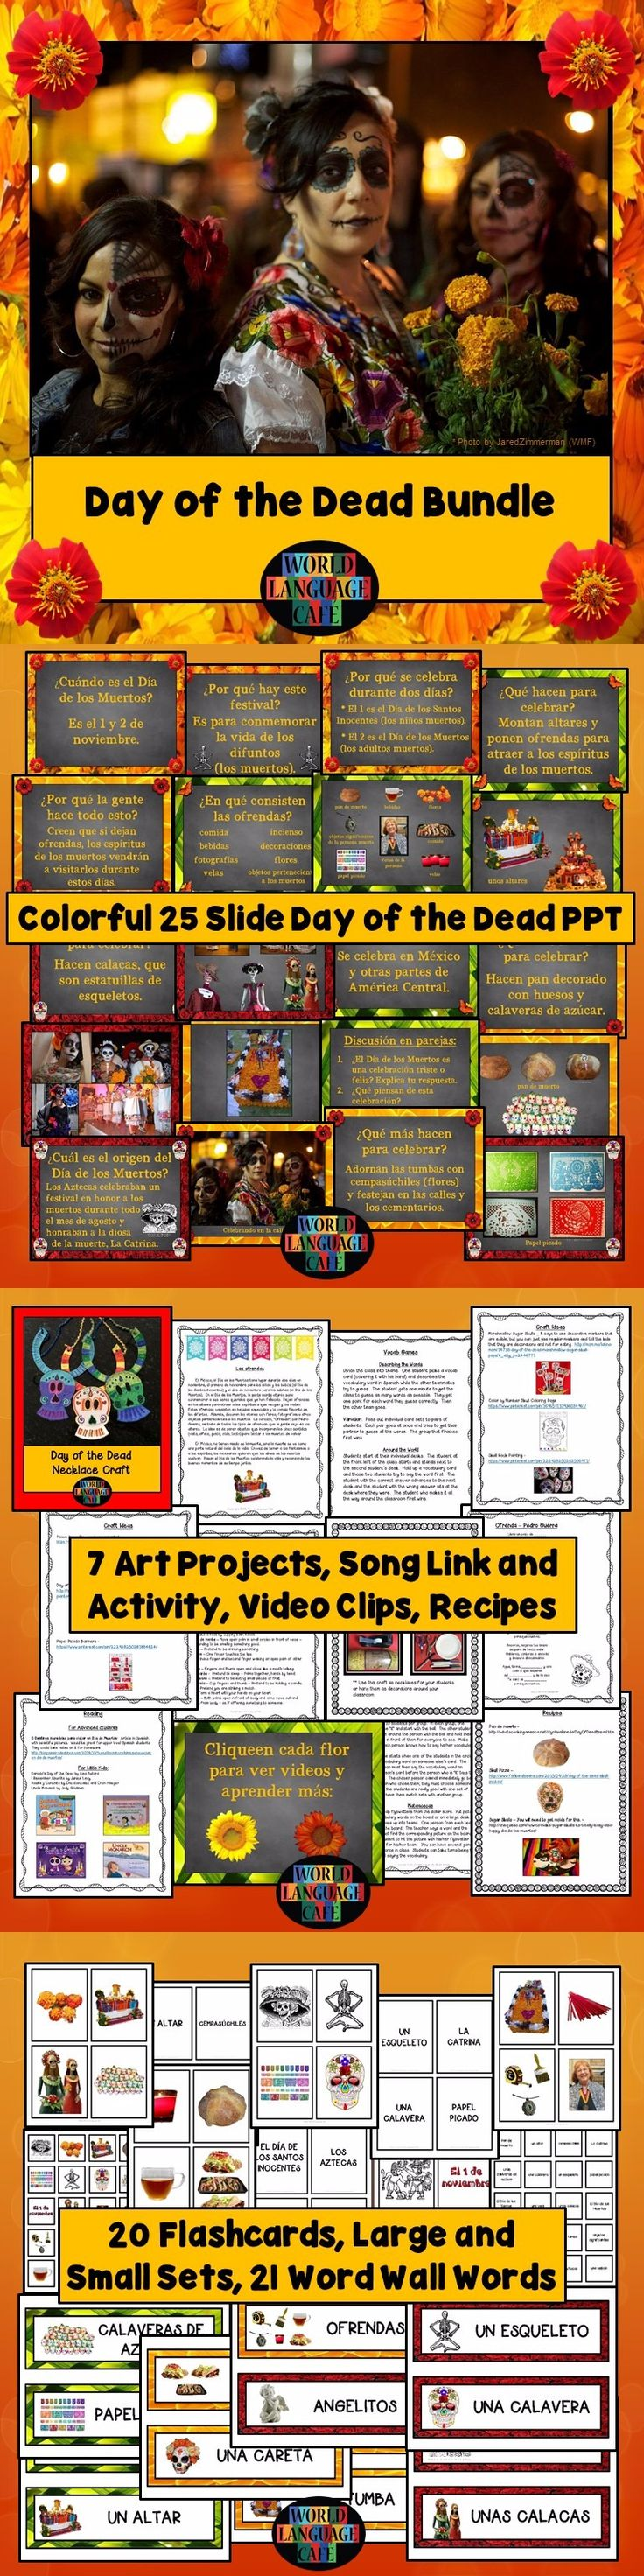 Everything you need to spice up Day of the Dead, Día de los Muertos in your Spanish class.  This Day of the Dead lesson plan includes:  a colorful 25 slide PPT, a song link and activity, video links, craft ideas, etc.